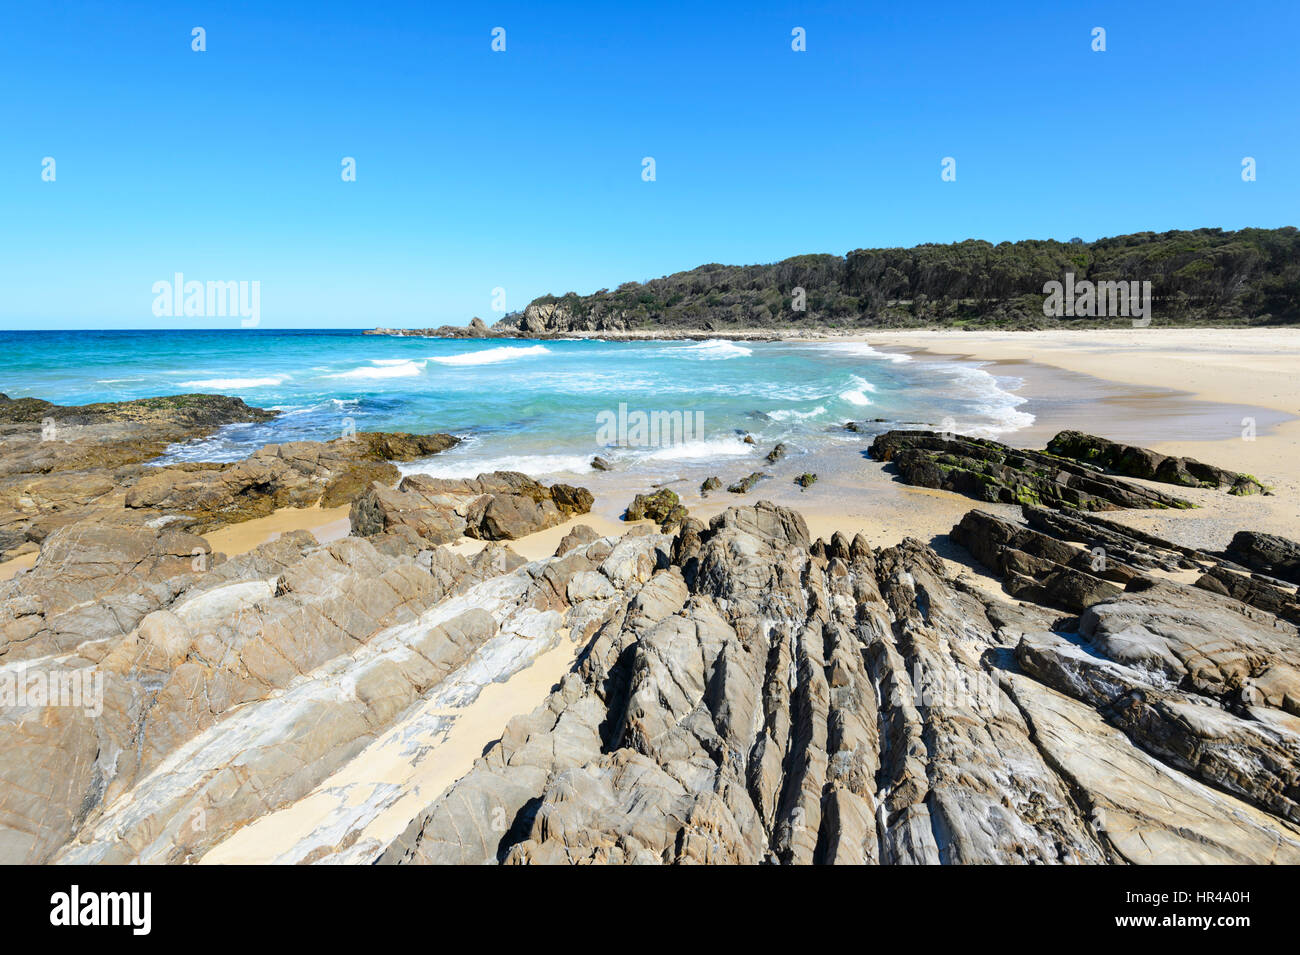 Deserted sandy beach with amazing rock formations at Potato Point, New South Wales, Australia Stock Photo